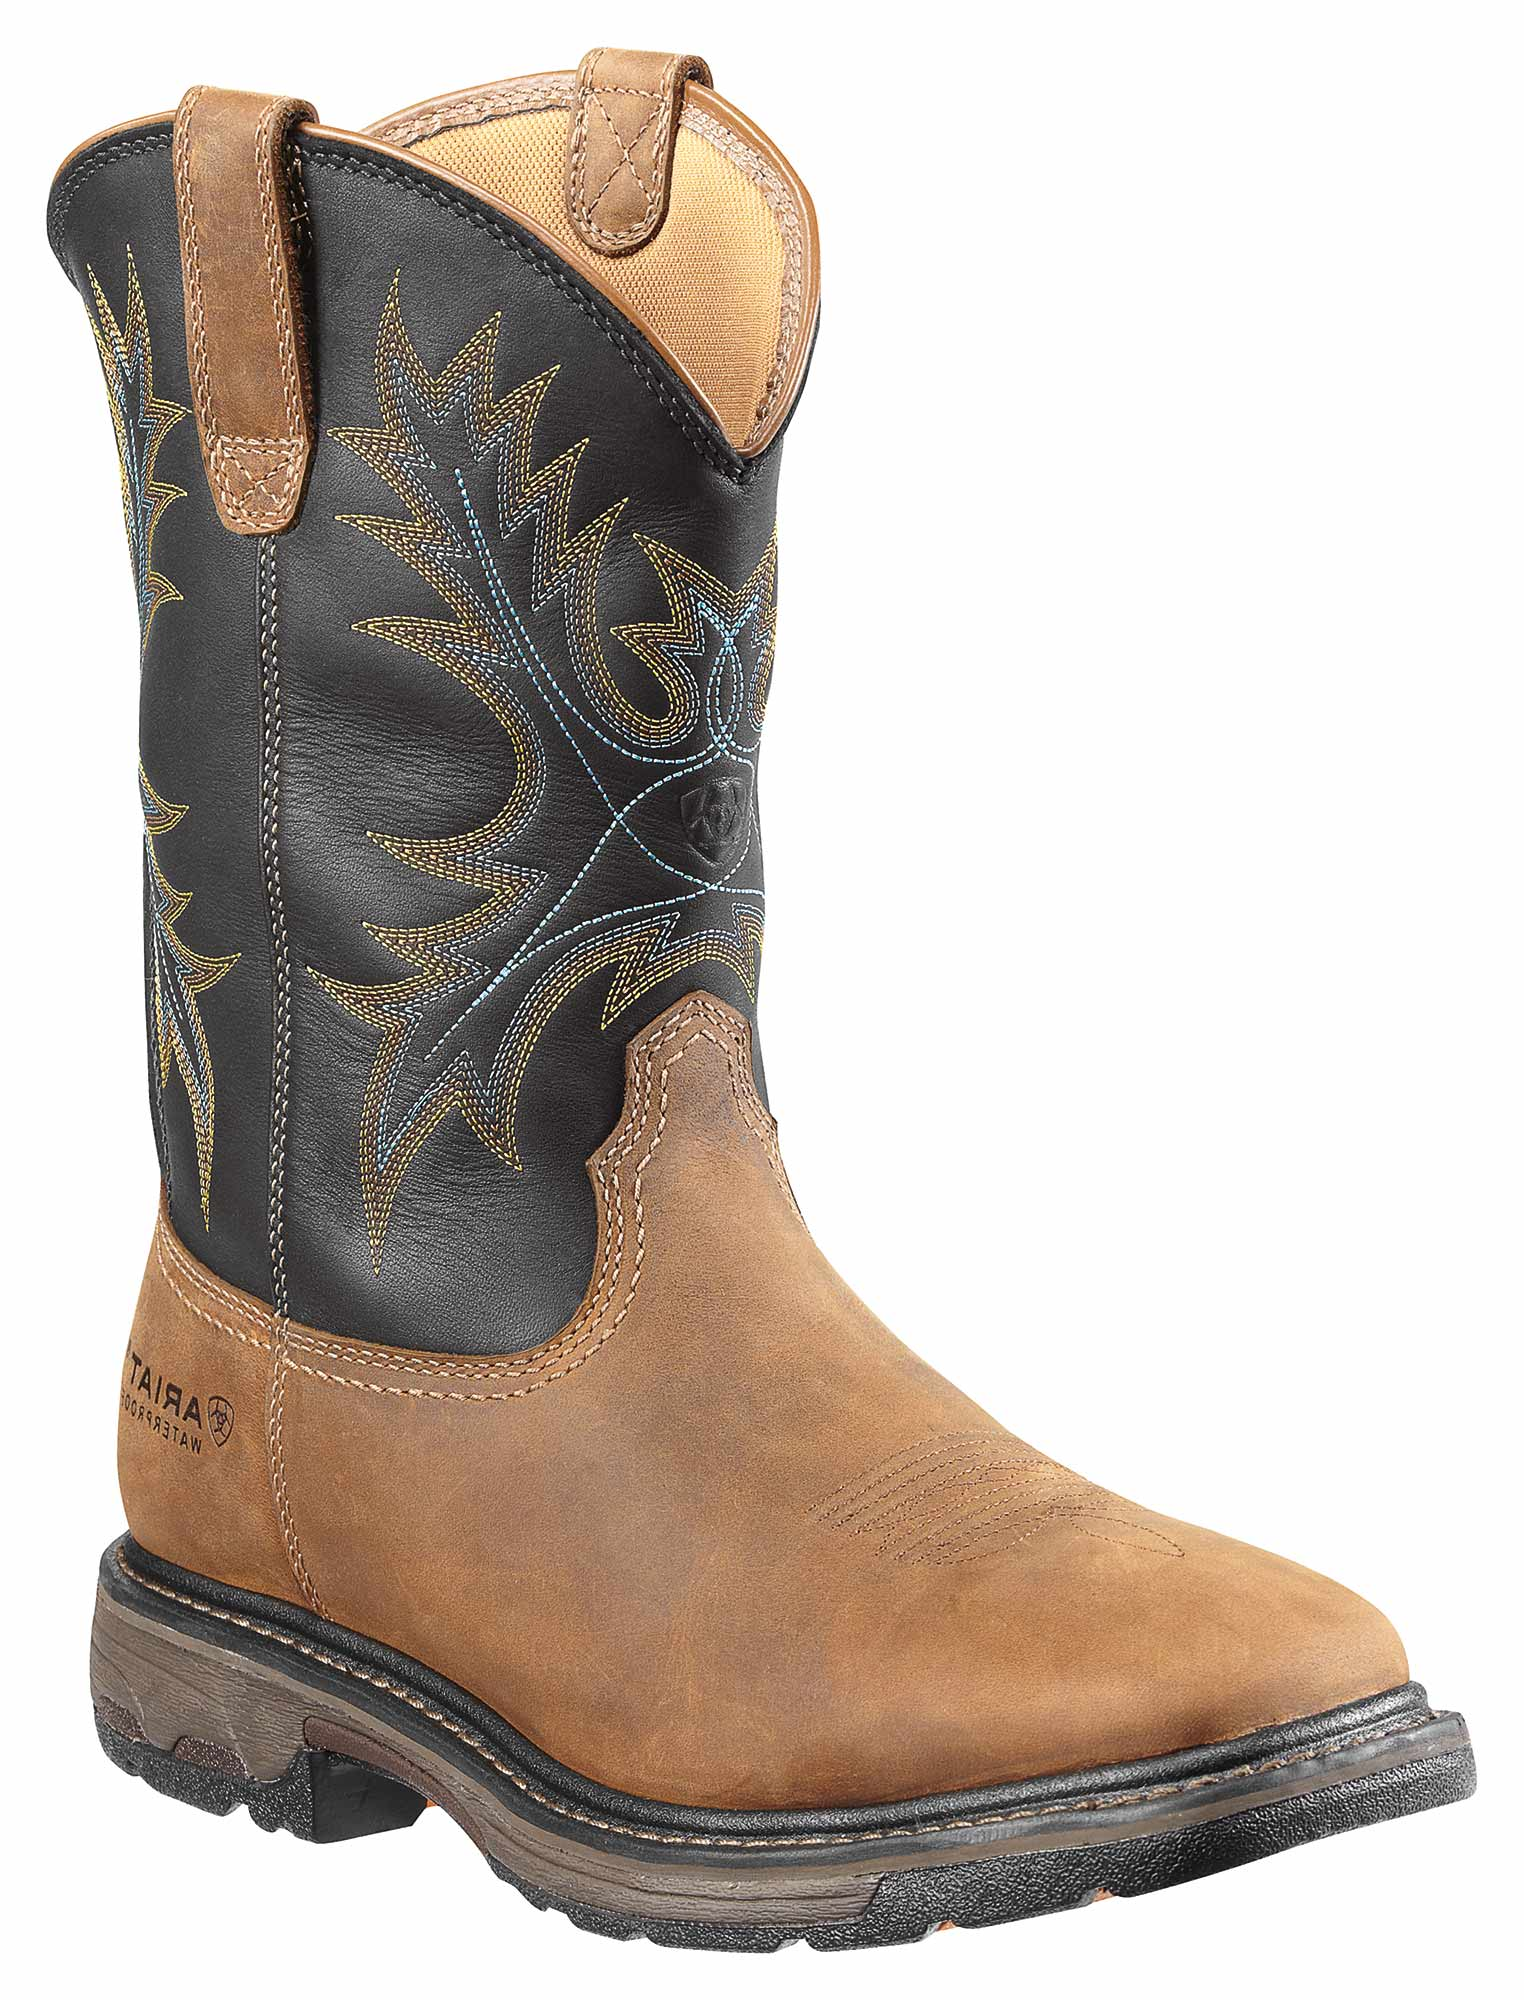 Collections Cheap Online Discount Purchase Ariat Workhog? Wide Square Steel Toe Boot(Men's) -Rugged Bark Full Grain Leather Discount 2018 Unisex DQln4ni